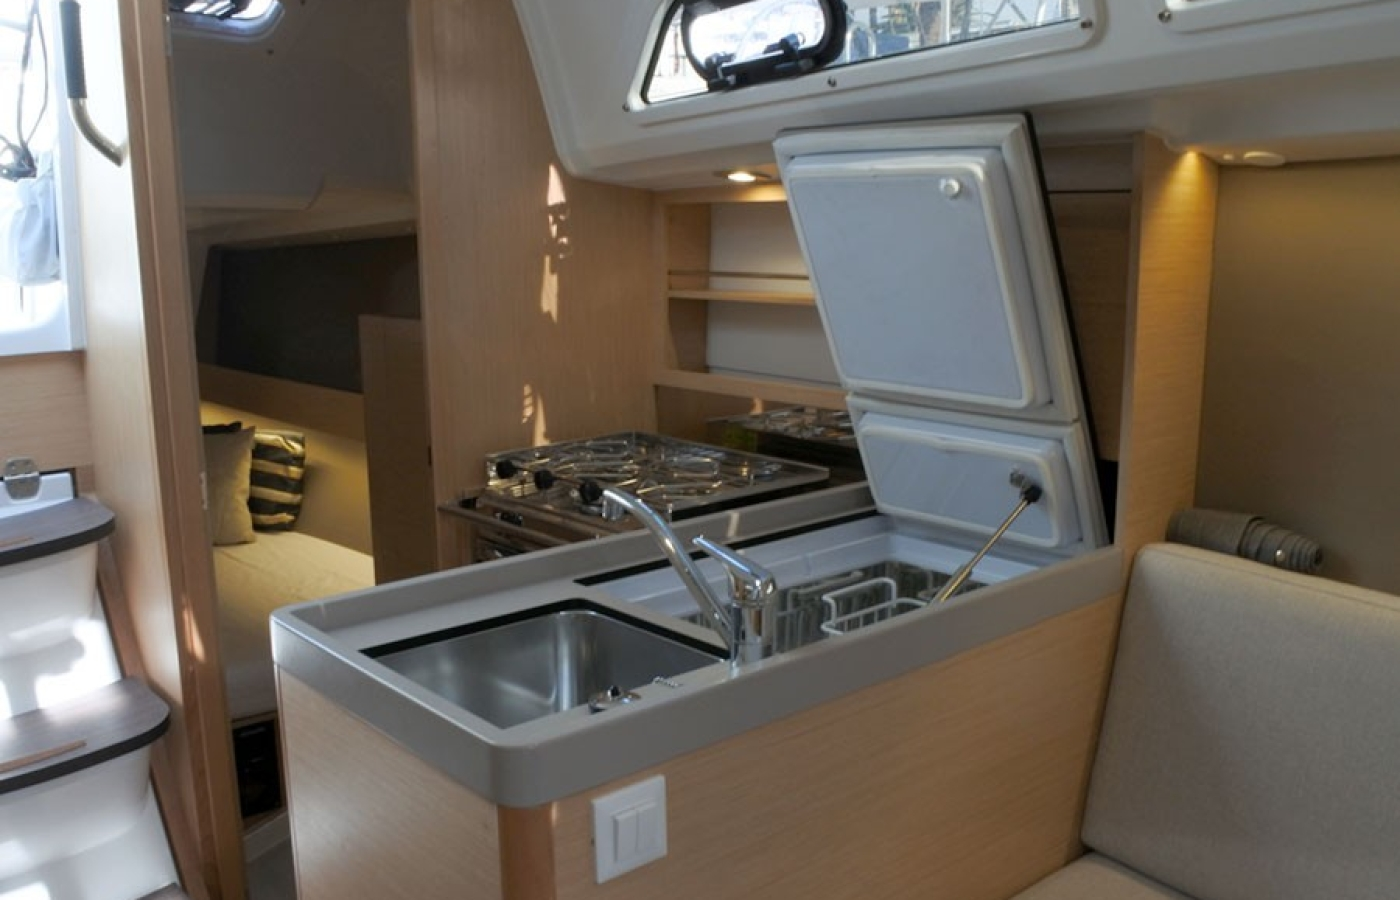 Galley with fridge and freezer